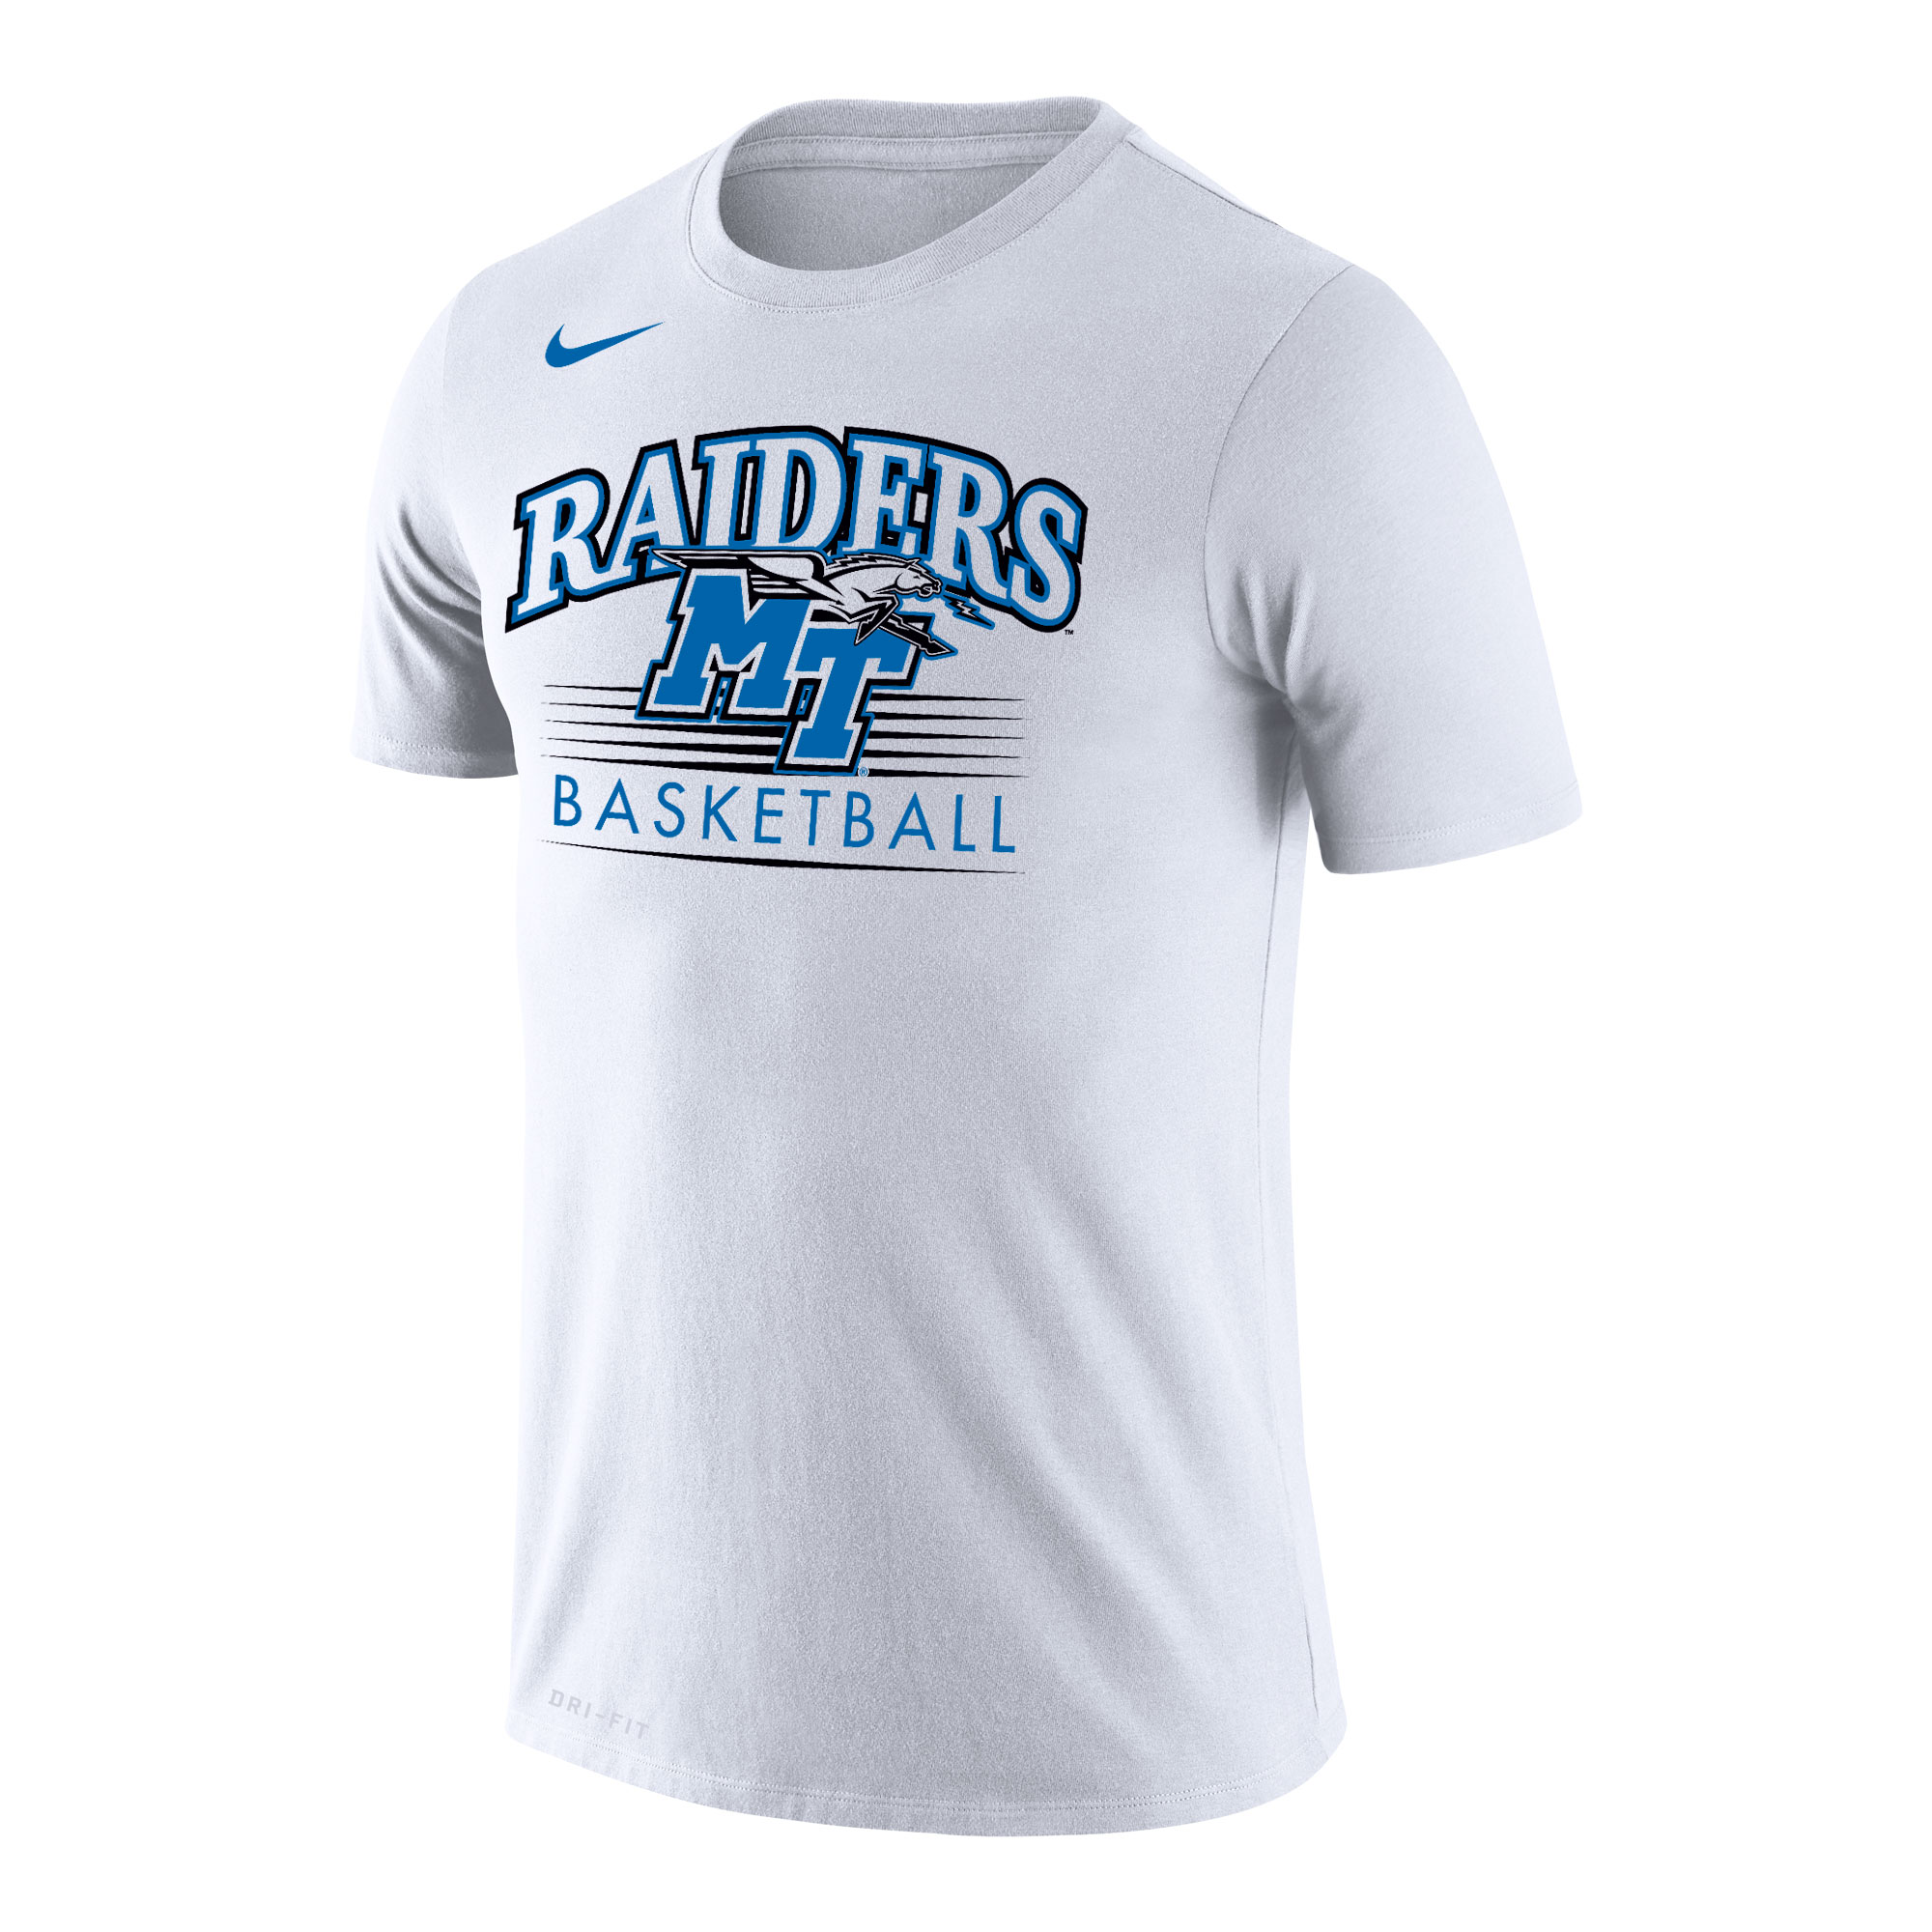 Raiders MT Logo w/ Lightning Basketball Nike® Dri-Fit Cotton Shirt